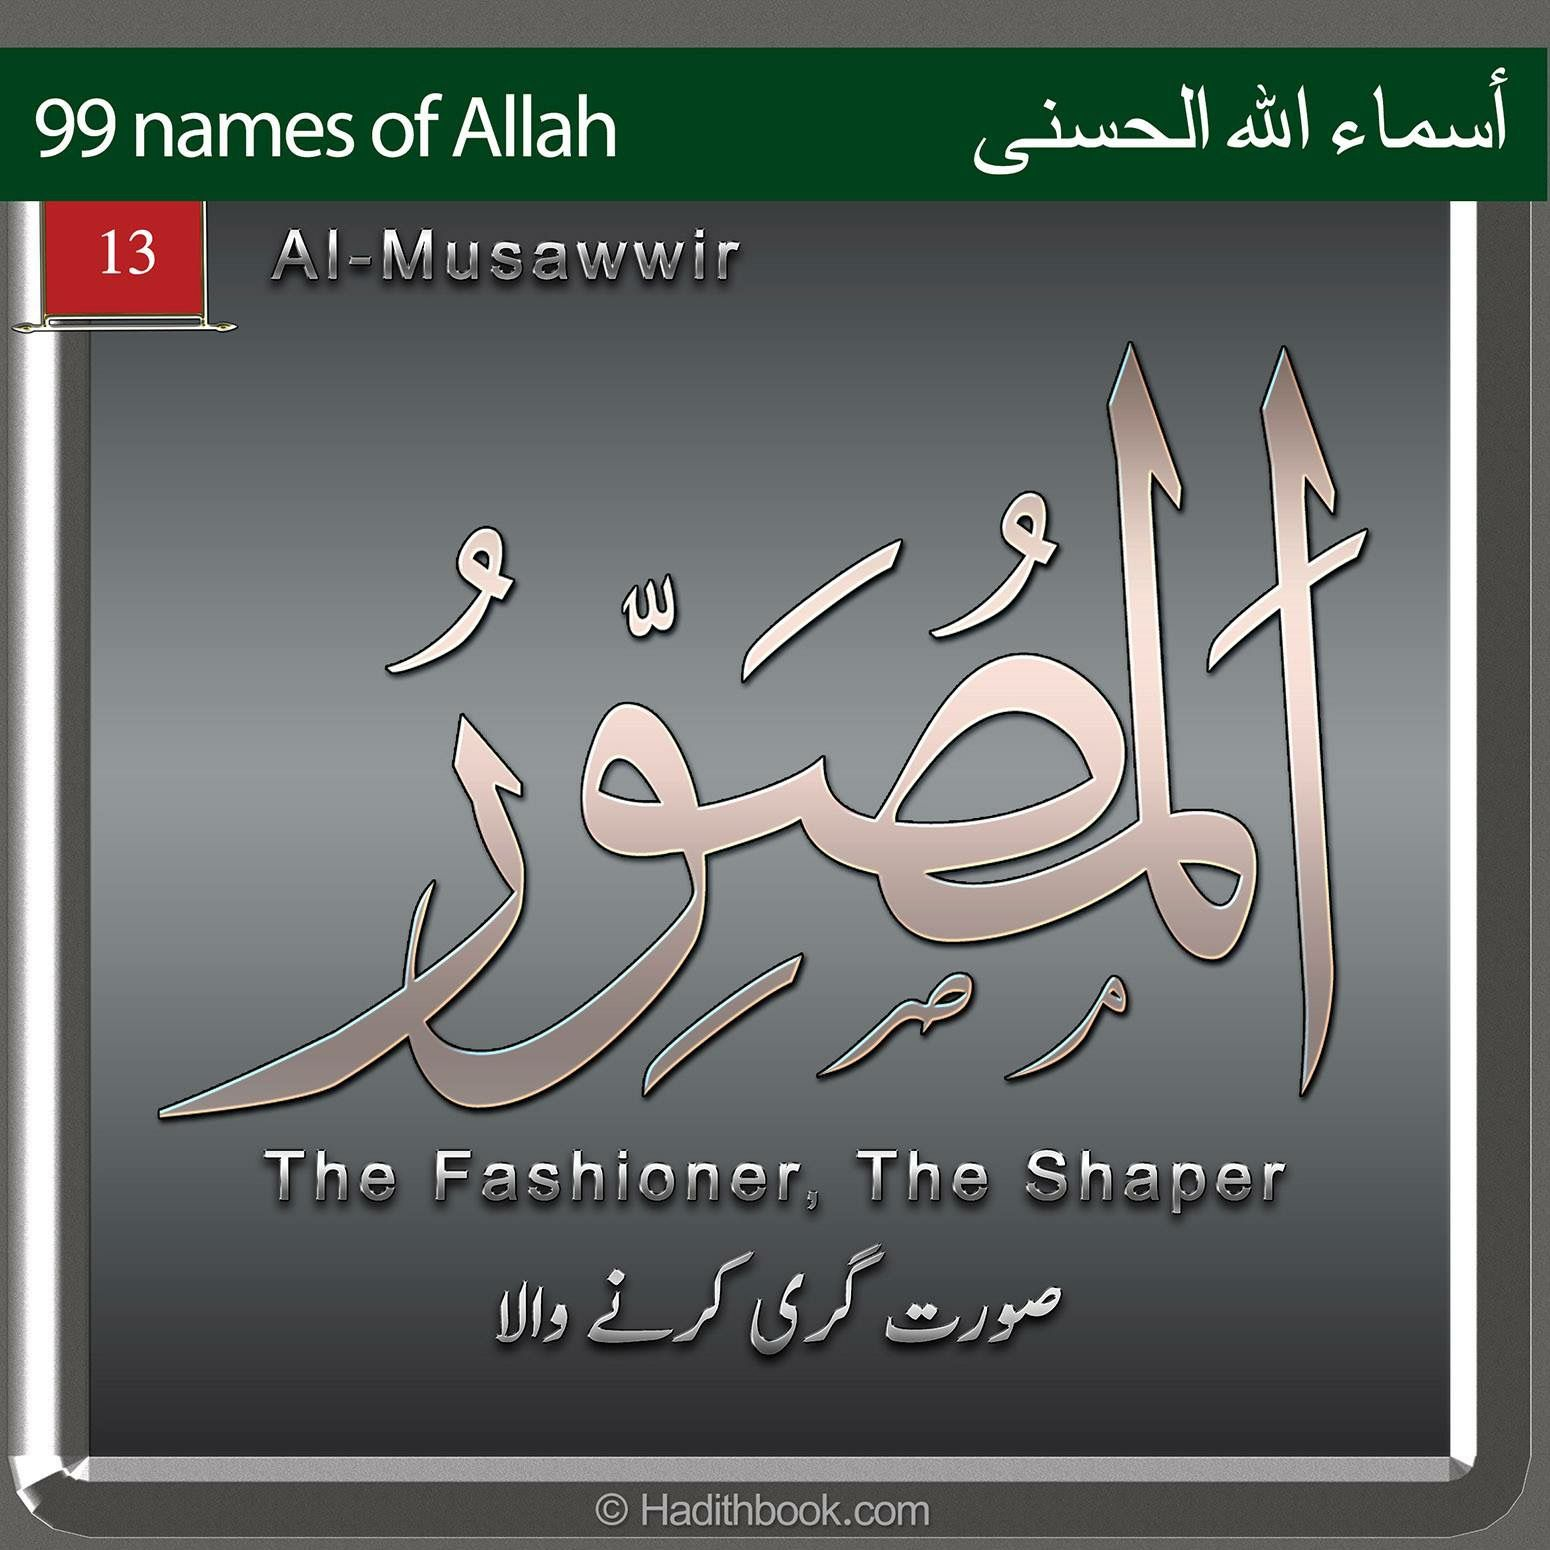 Pin by Khaled Bahnasawy on Names of Allah أسماء الله